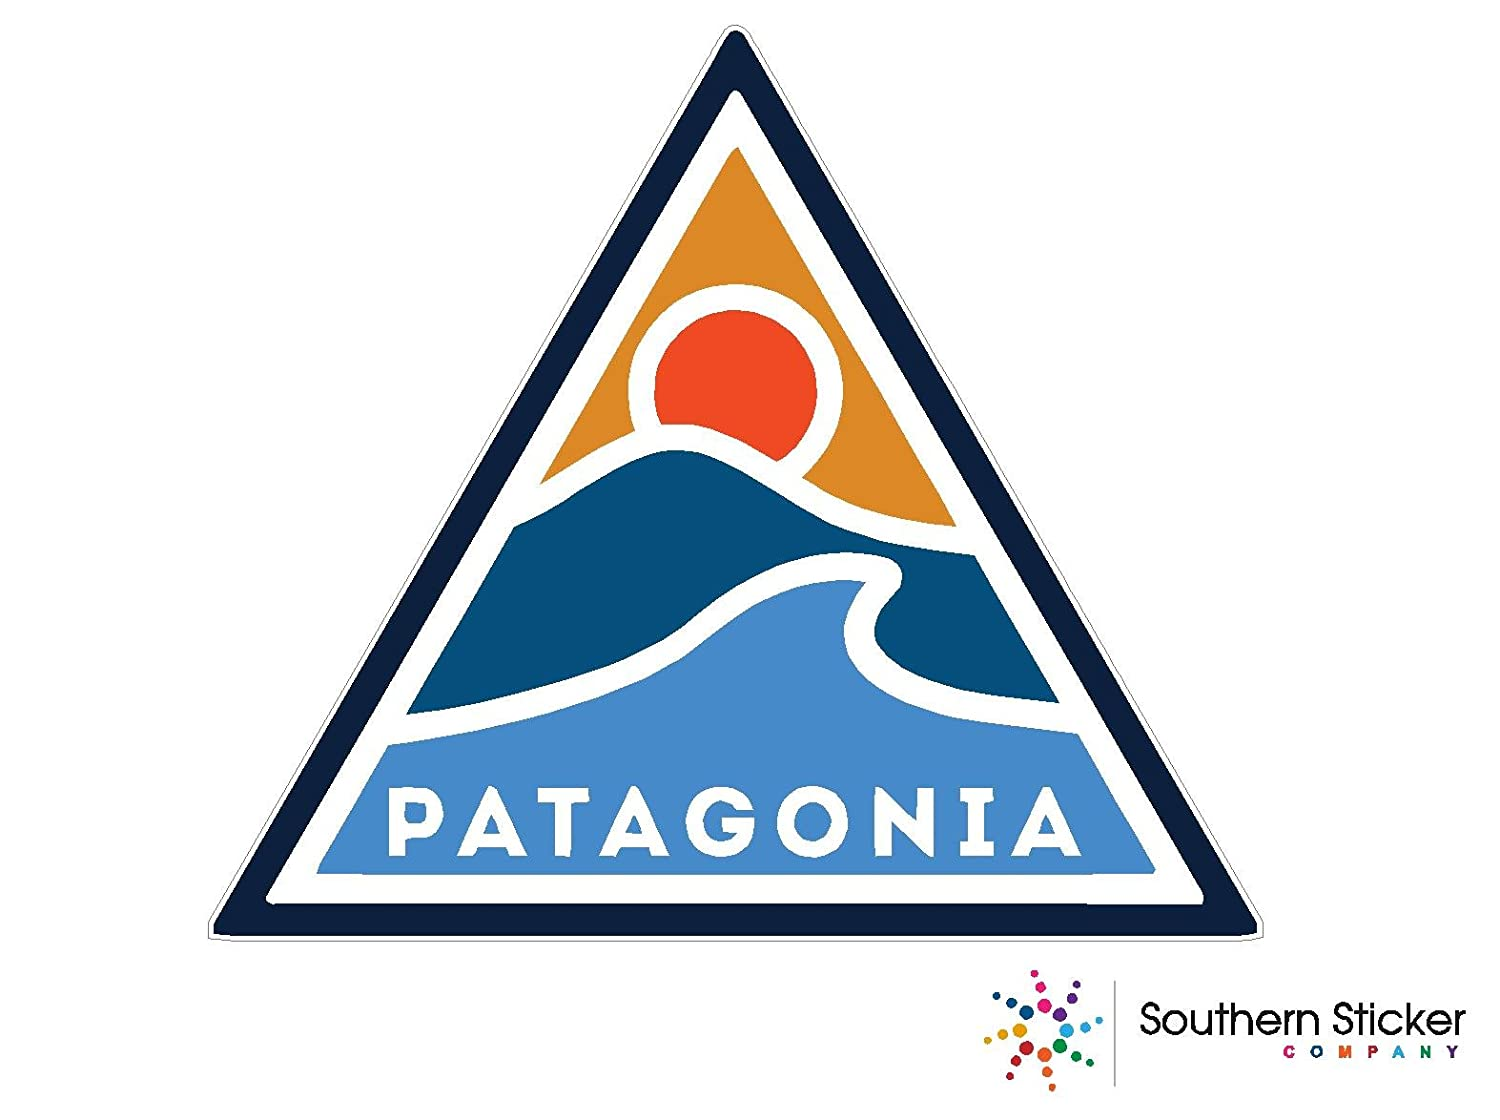 Amazon Patagonia Triangle Sun Wave 4x4 Inches Size Funny